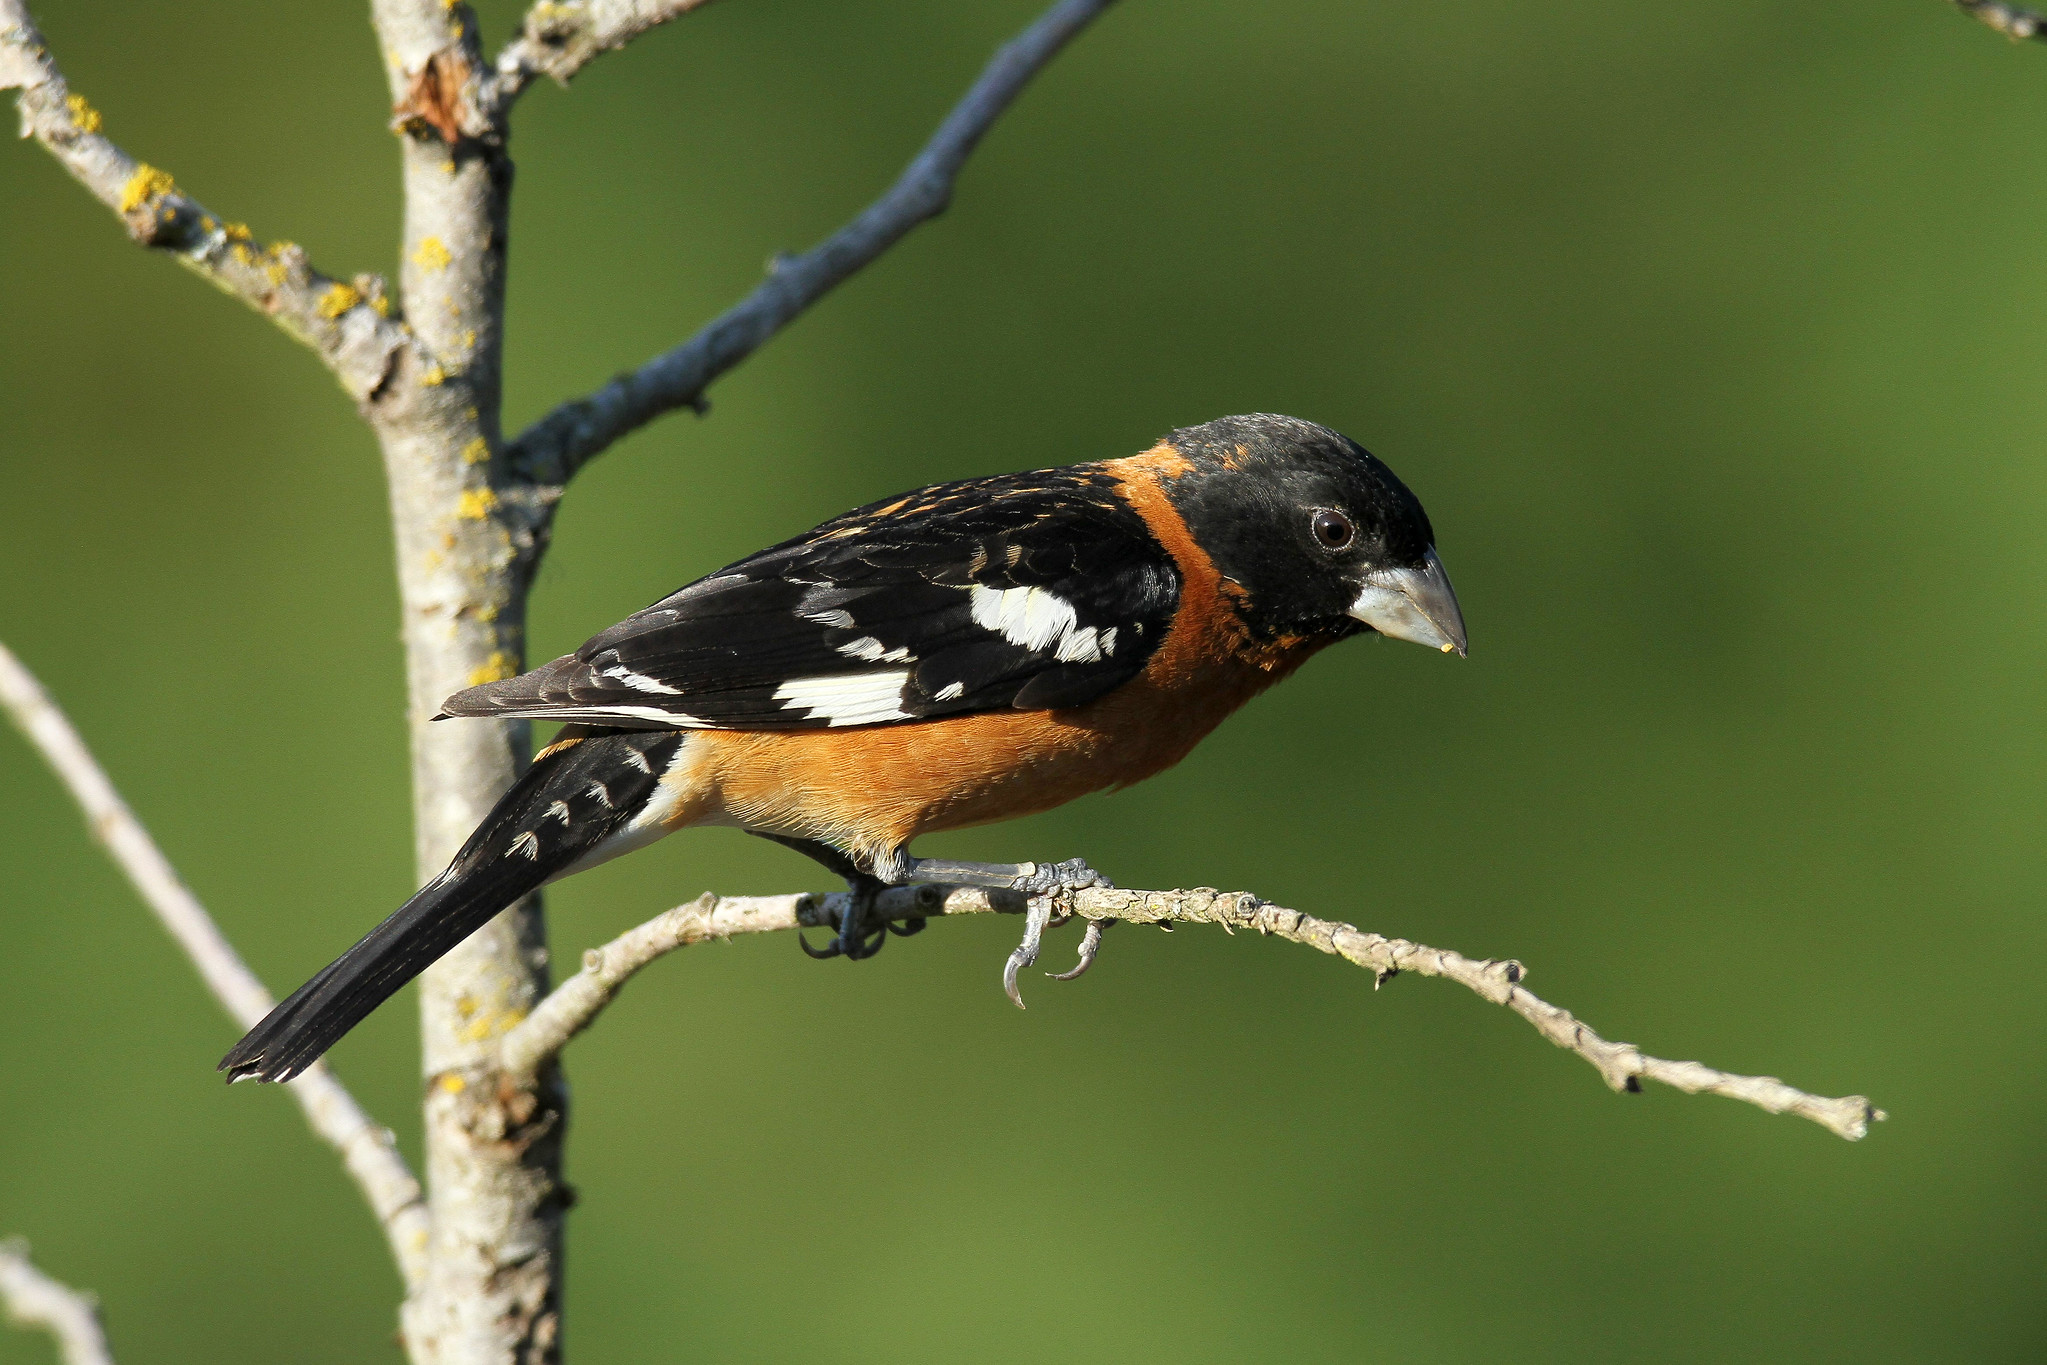 Pheucticus melanocephalus ♂ (Black-headed Grosbeak) - WA, USA